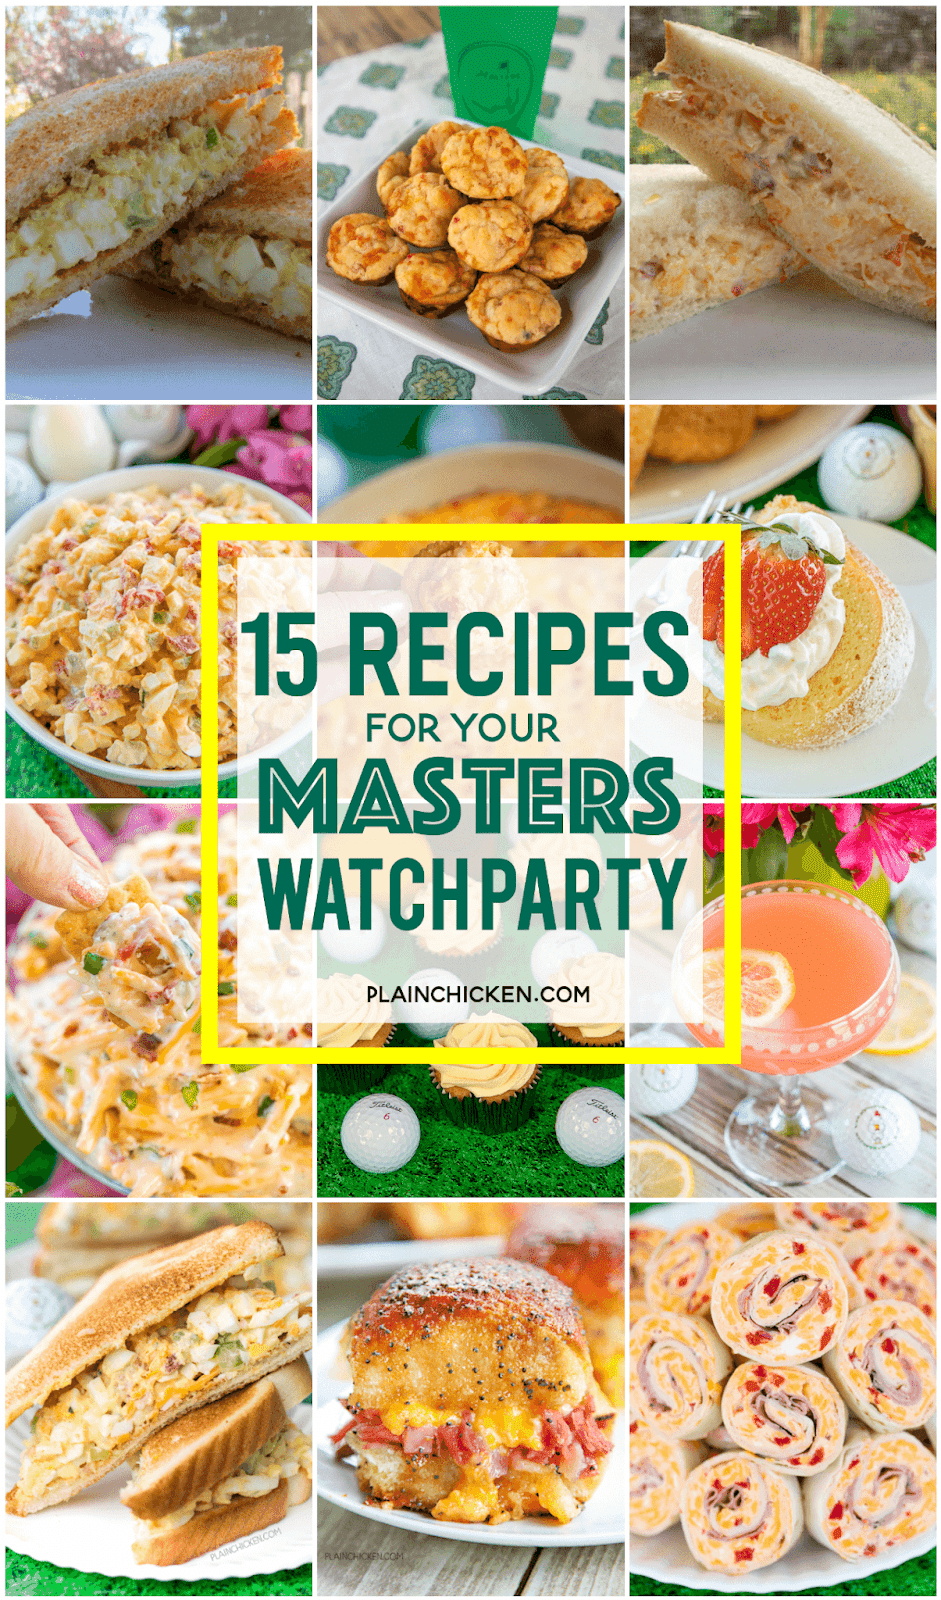 Collage of recipes for watching the masters golf tournament